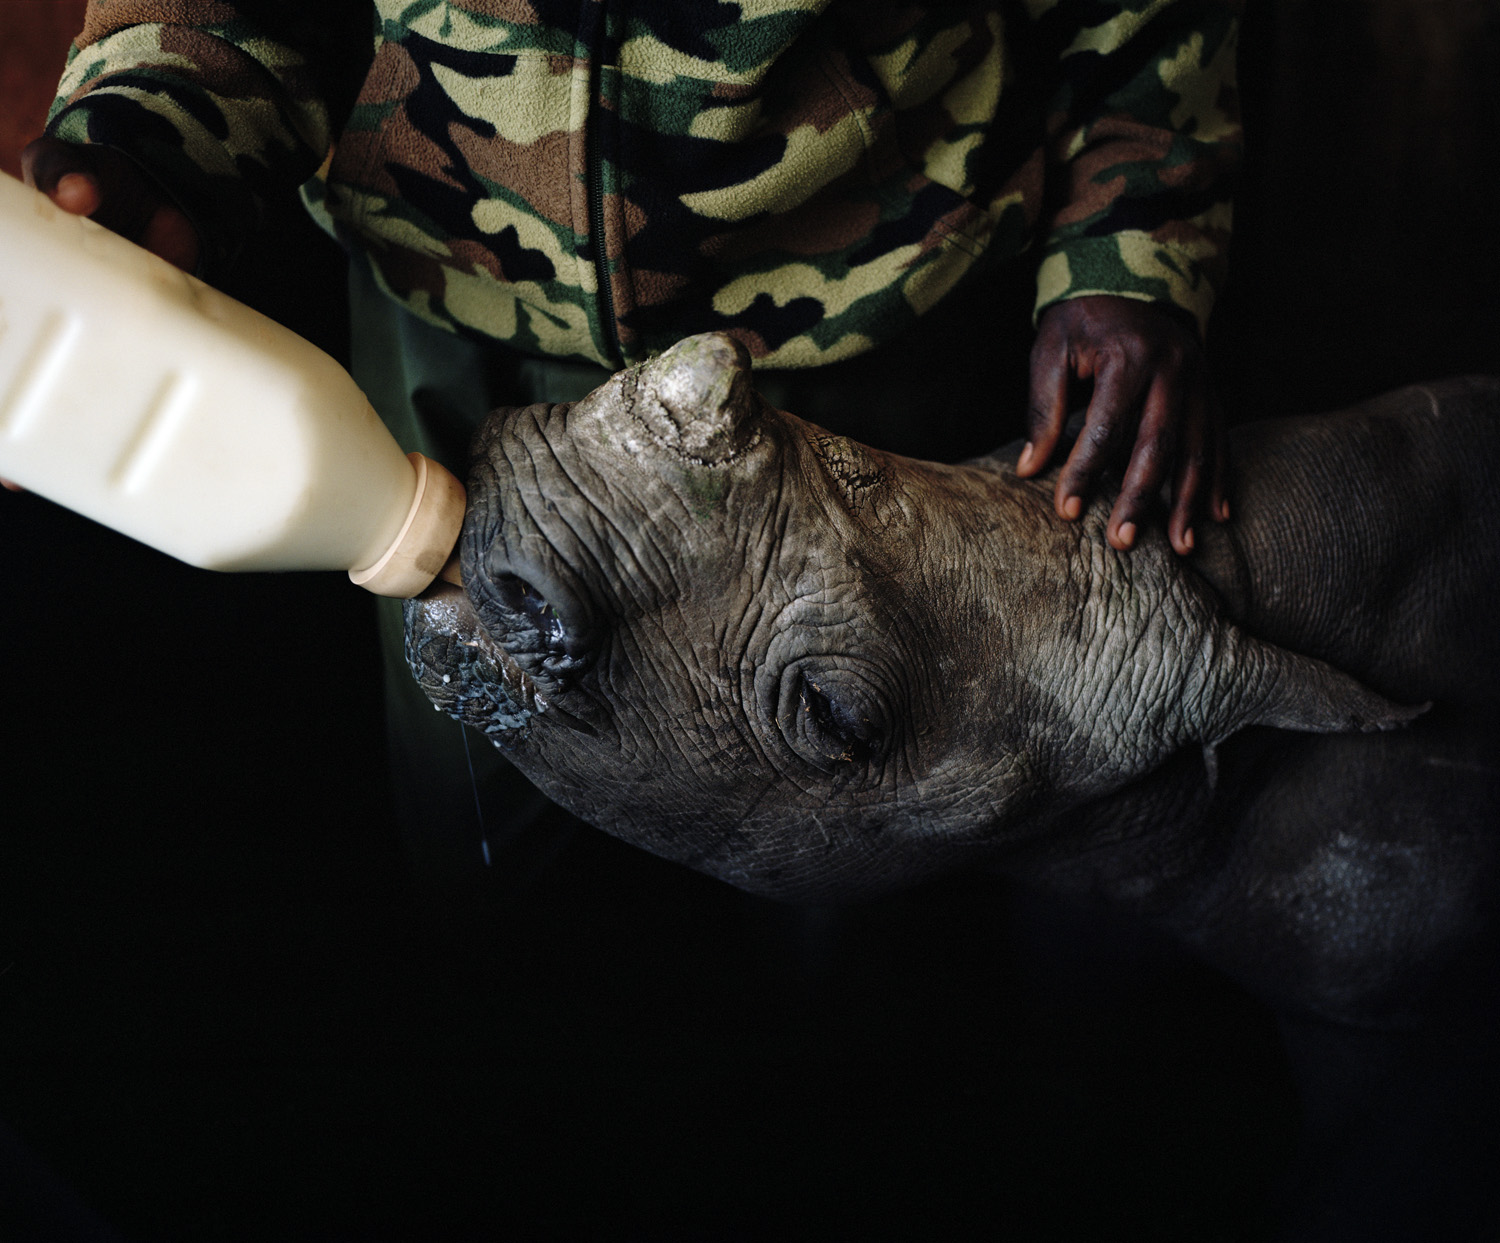 A black rhino calf orphaned by poachers is hand reared by a conservancy ranger. It's hoped that it will be reintroduced into the wild once it is old enough to survive attacks from predators.